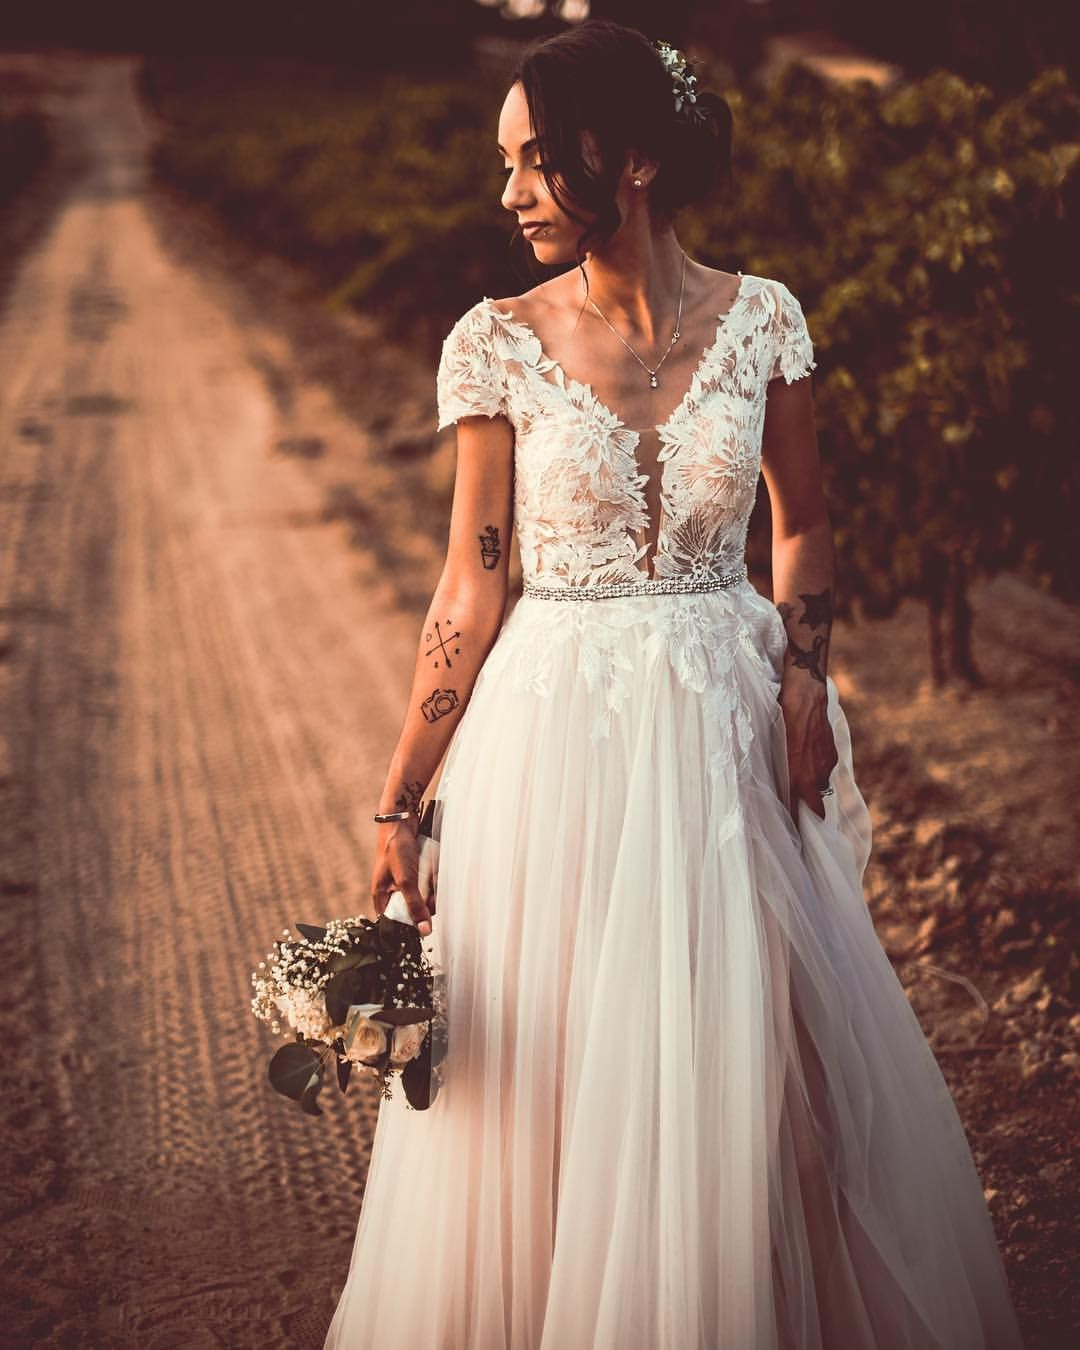 San Francisco Bay Area On Instagram Such A Stunning Bride In A Stunning Dress By Callablanchedress Stunning Bride Free Wedding Dress Wedding Dresses Simple